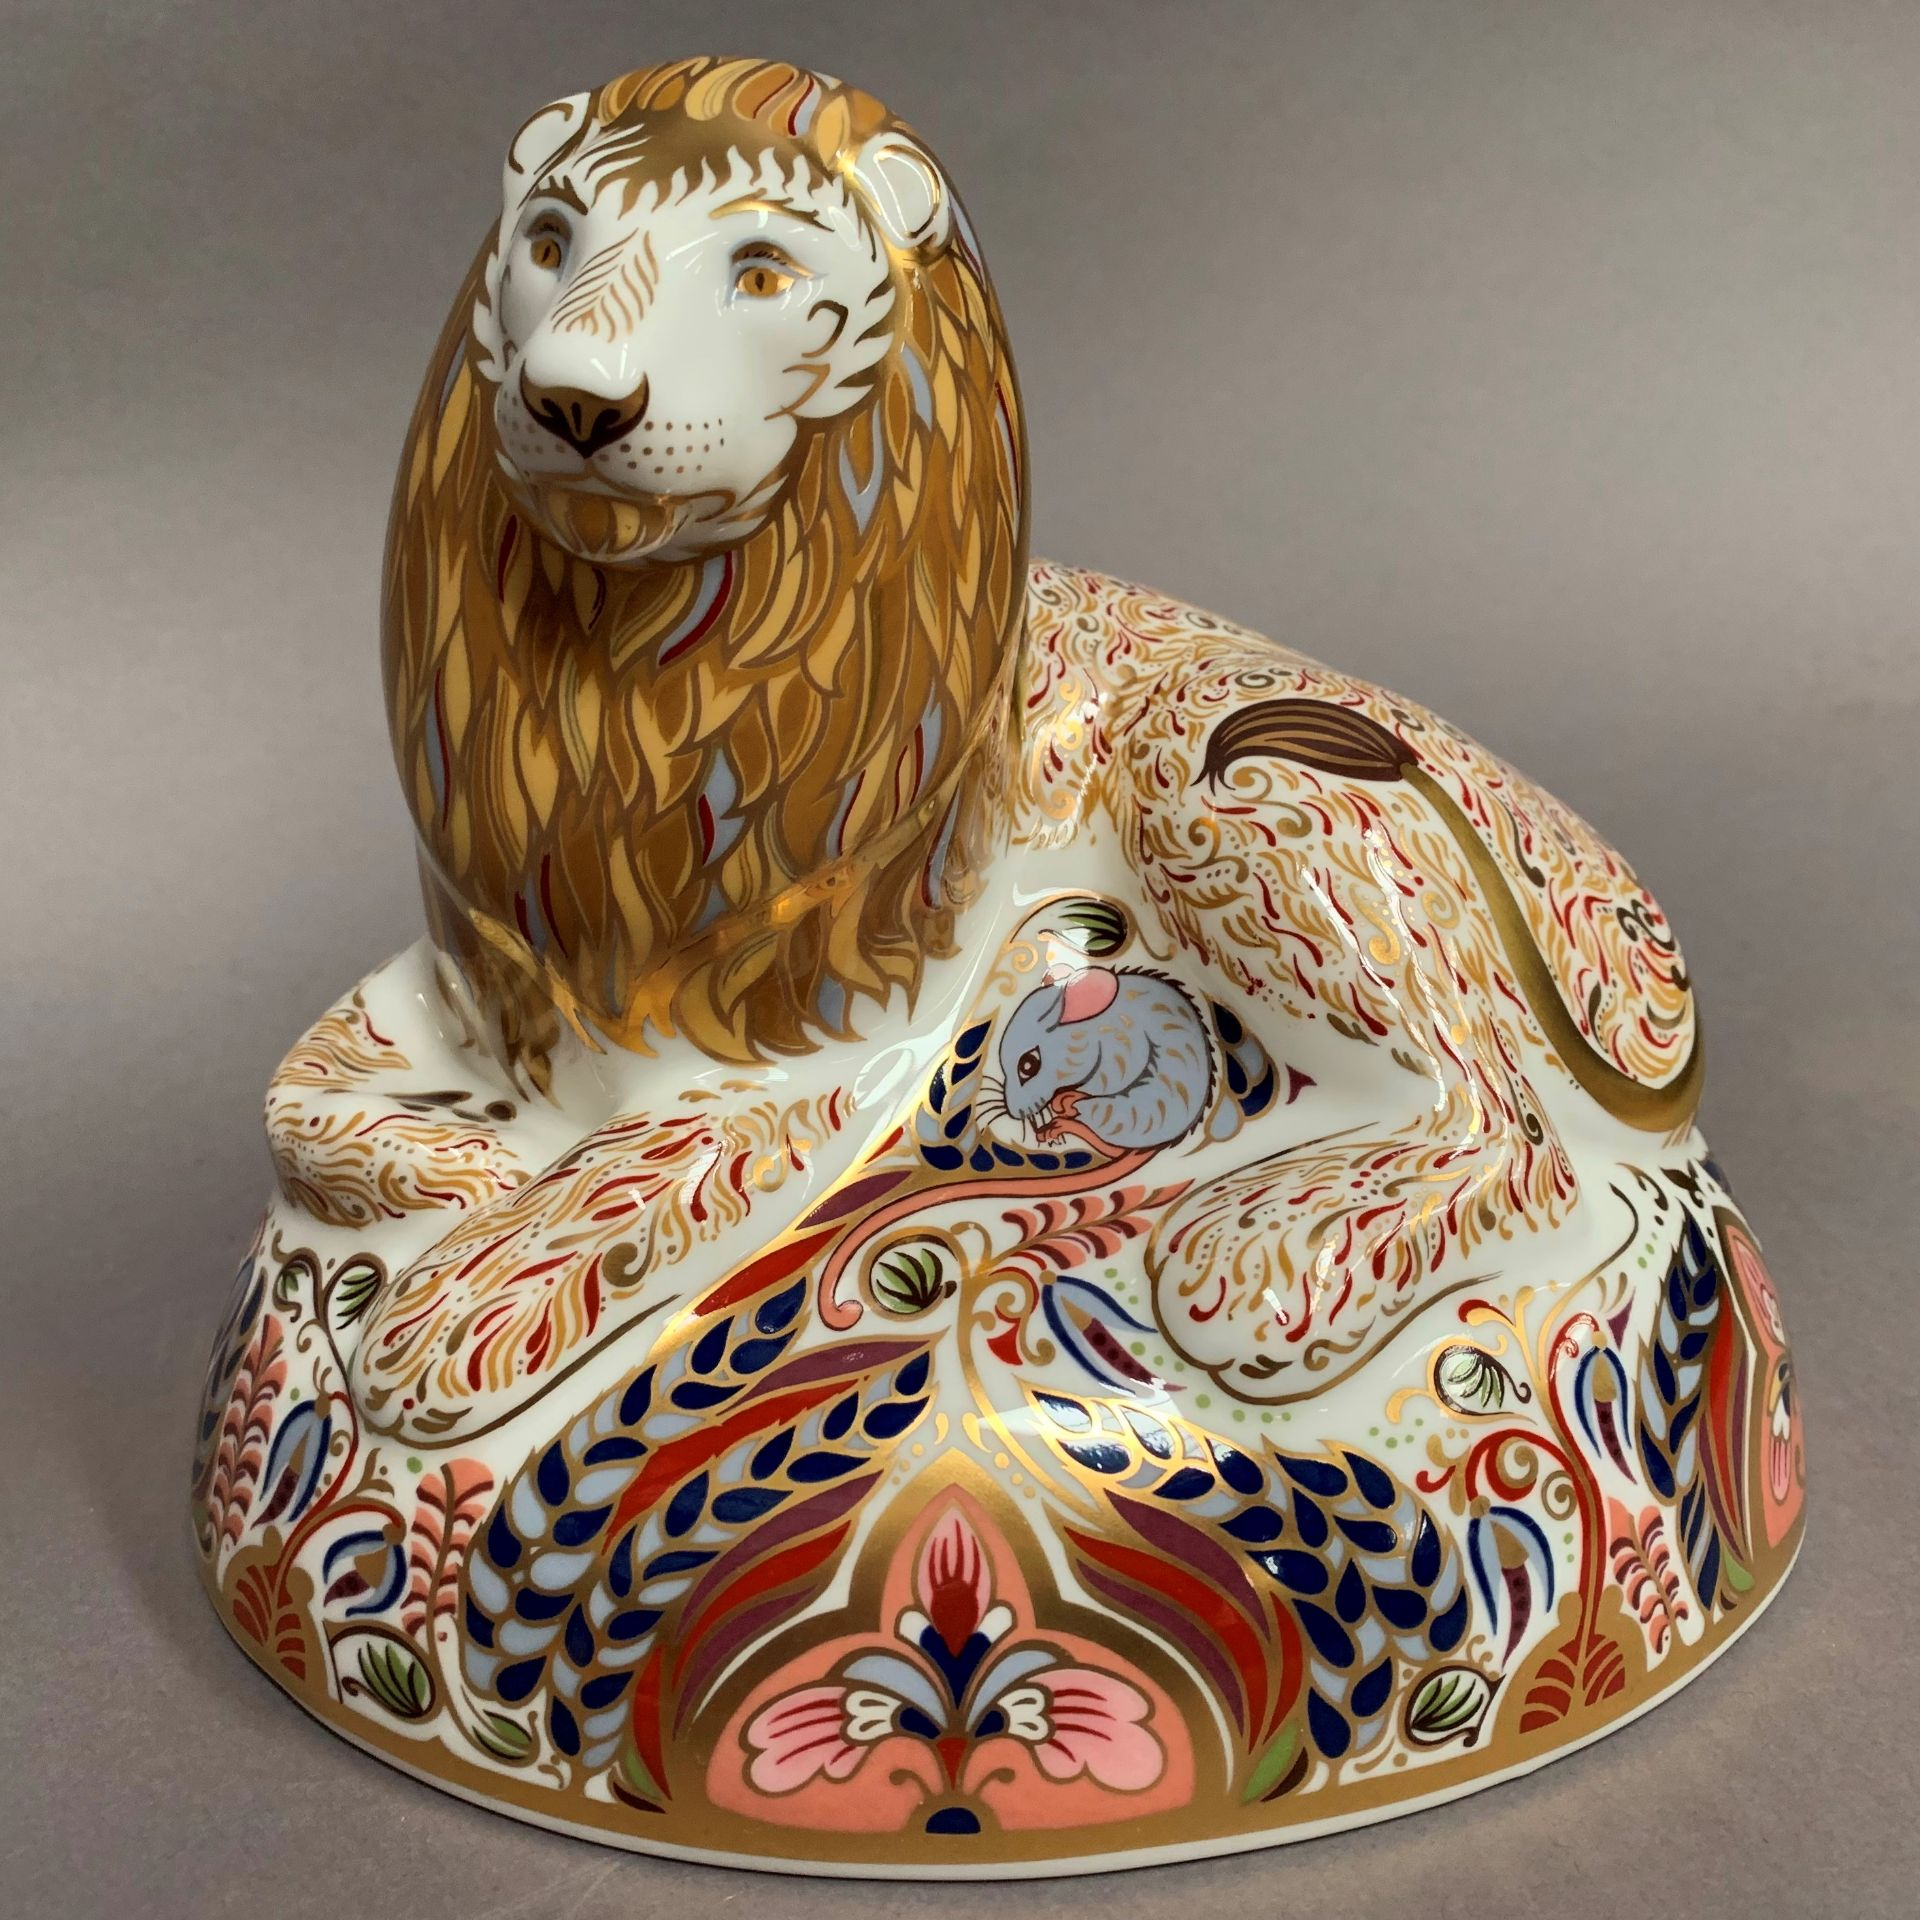 Lot 11 - Royal Crown Derby paperweight modelled as a lion, LX,